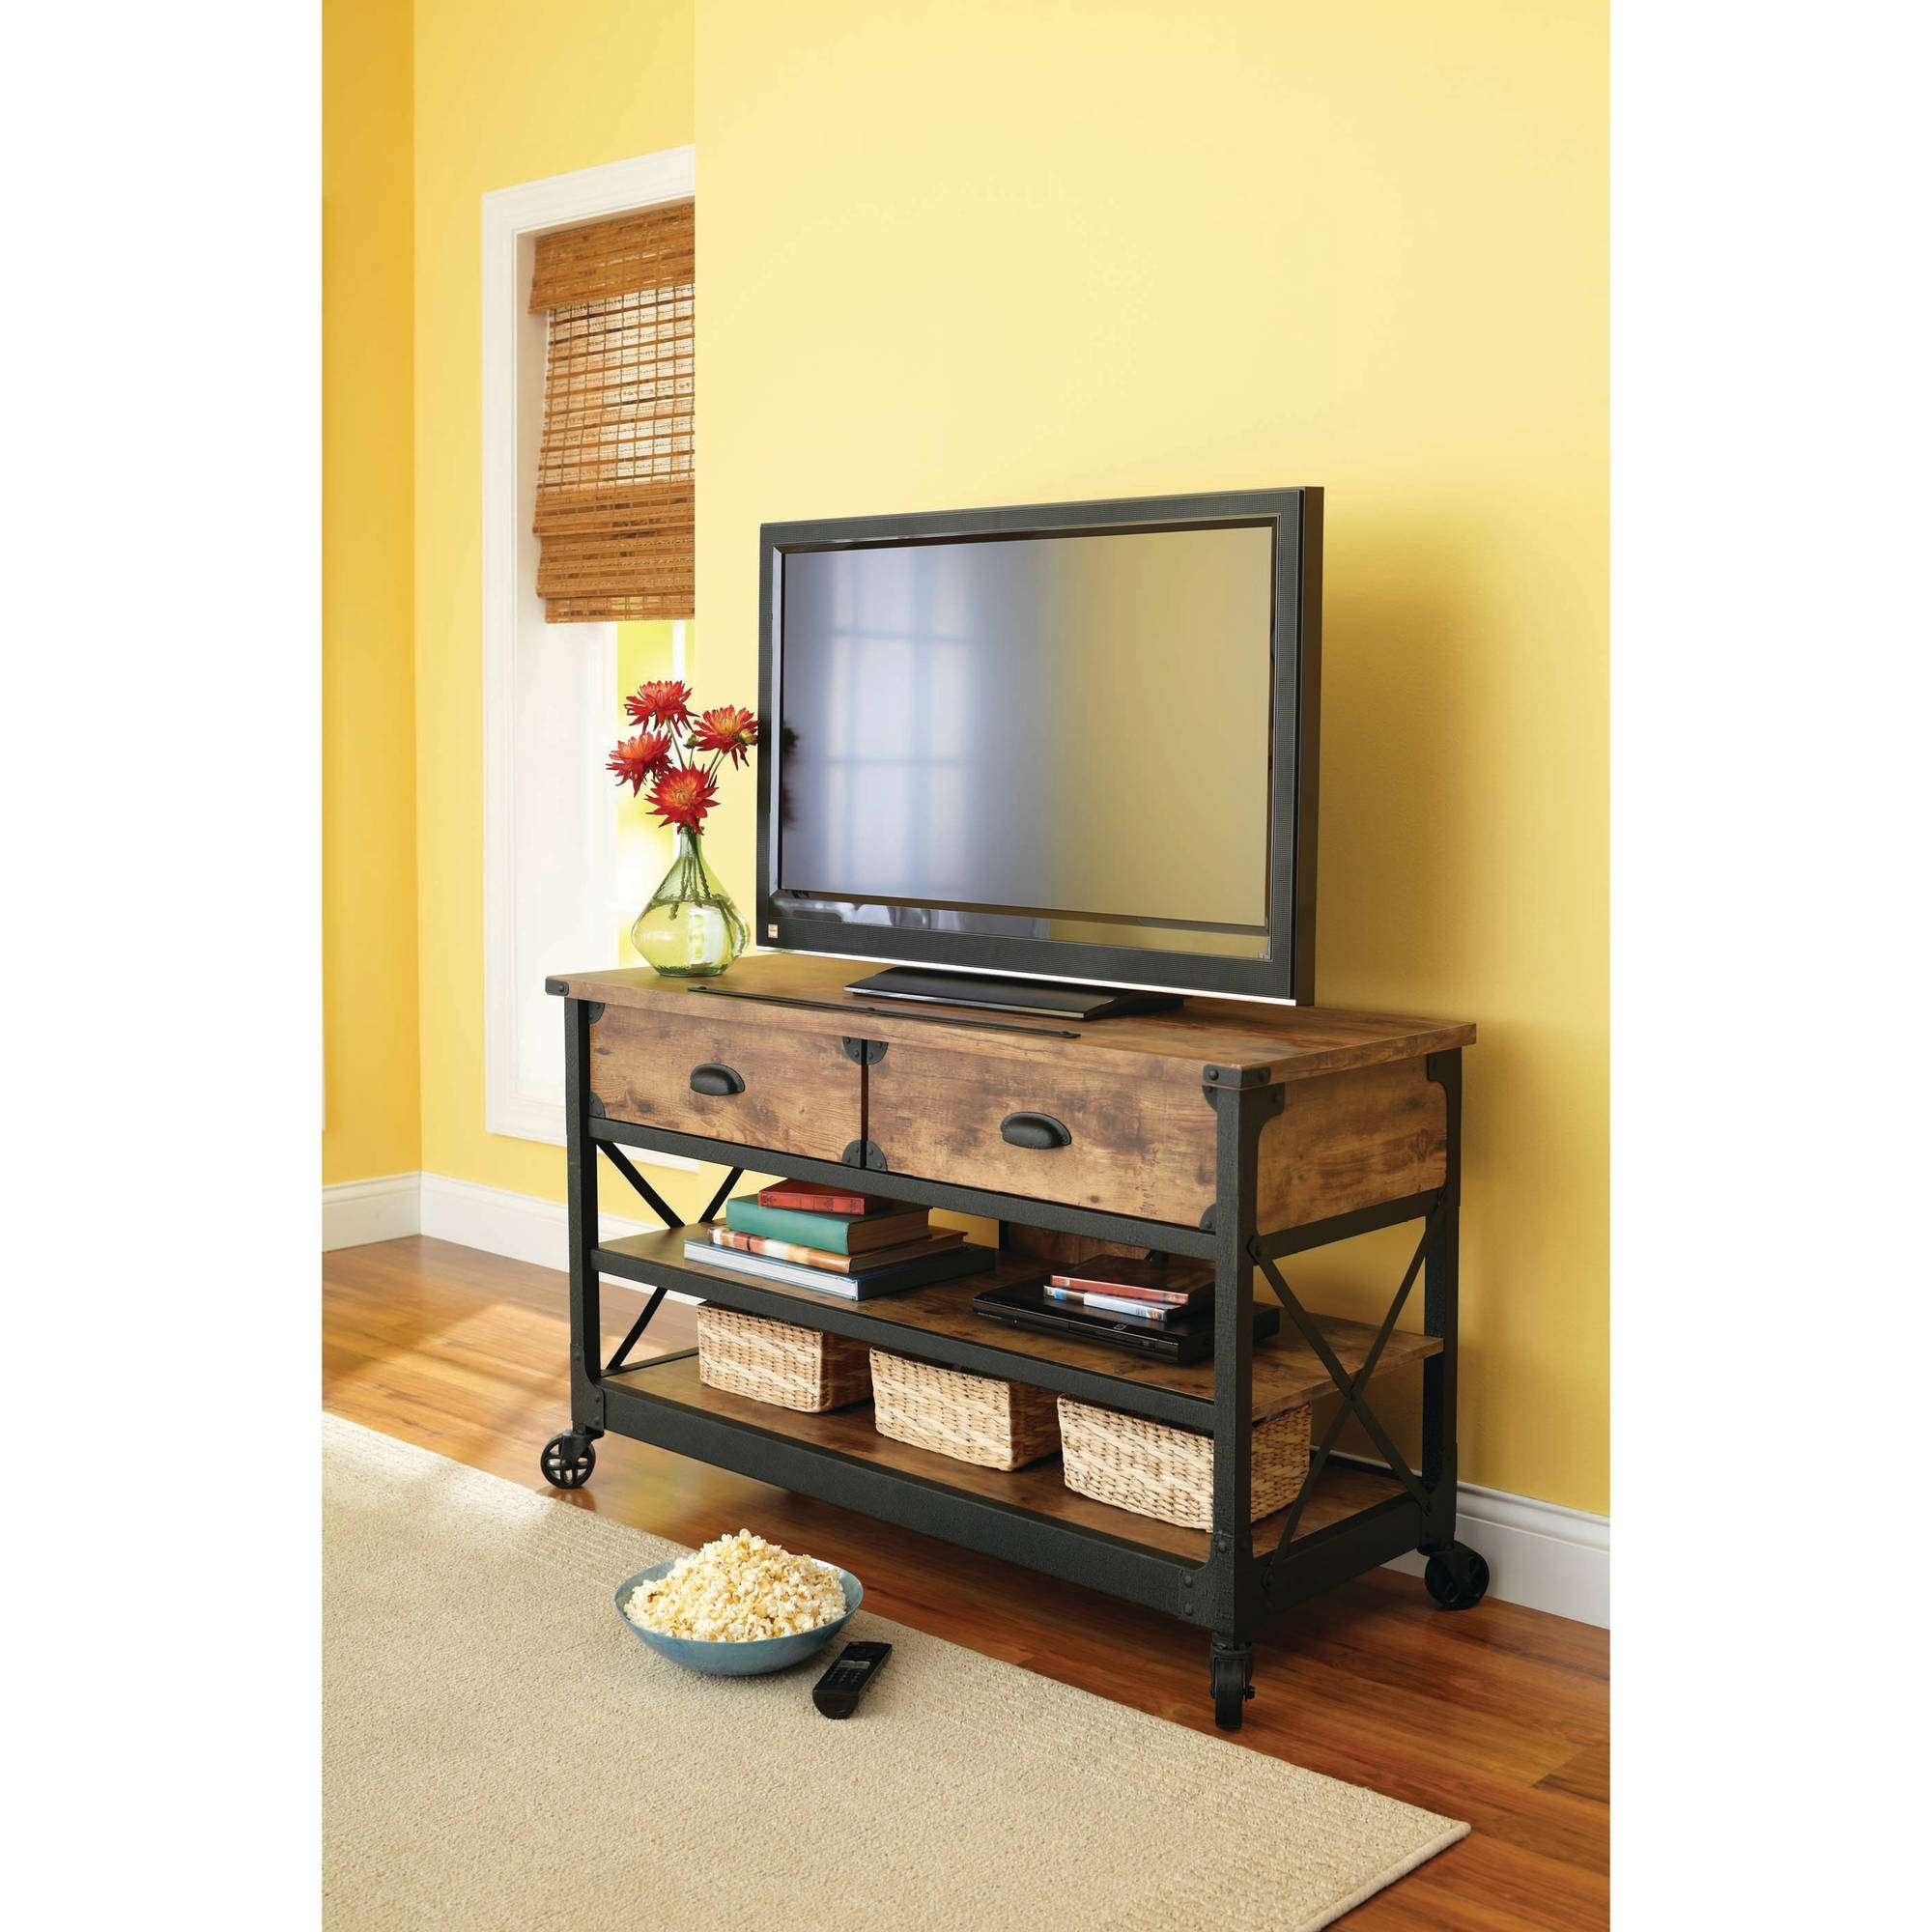 Better Homes And Gardens Rustic Country Antiqued Black/pine Panel Intended For Rustic Furniture Tv Stands (View 20 of 20)